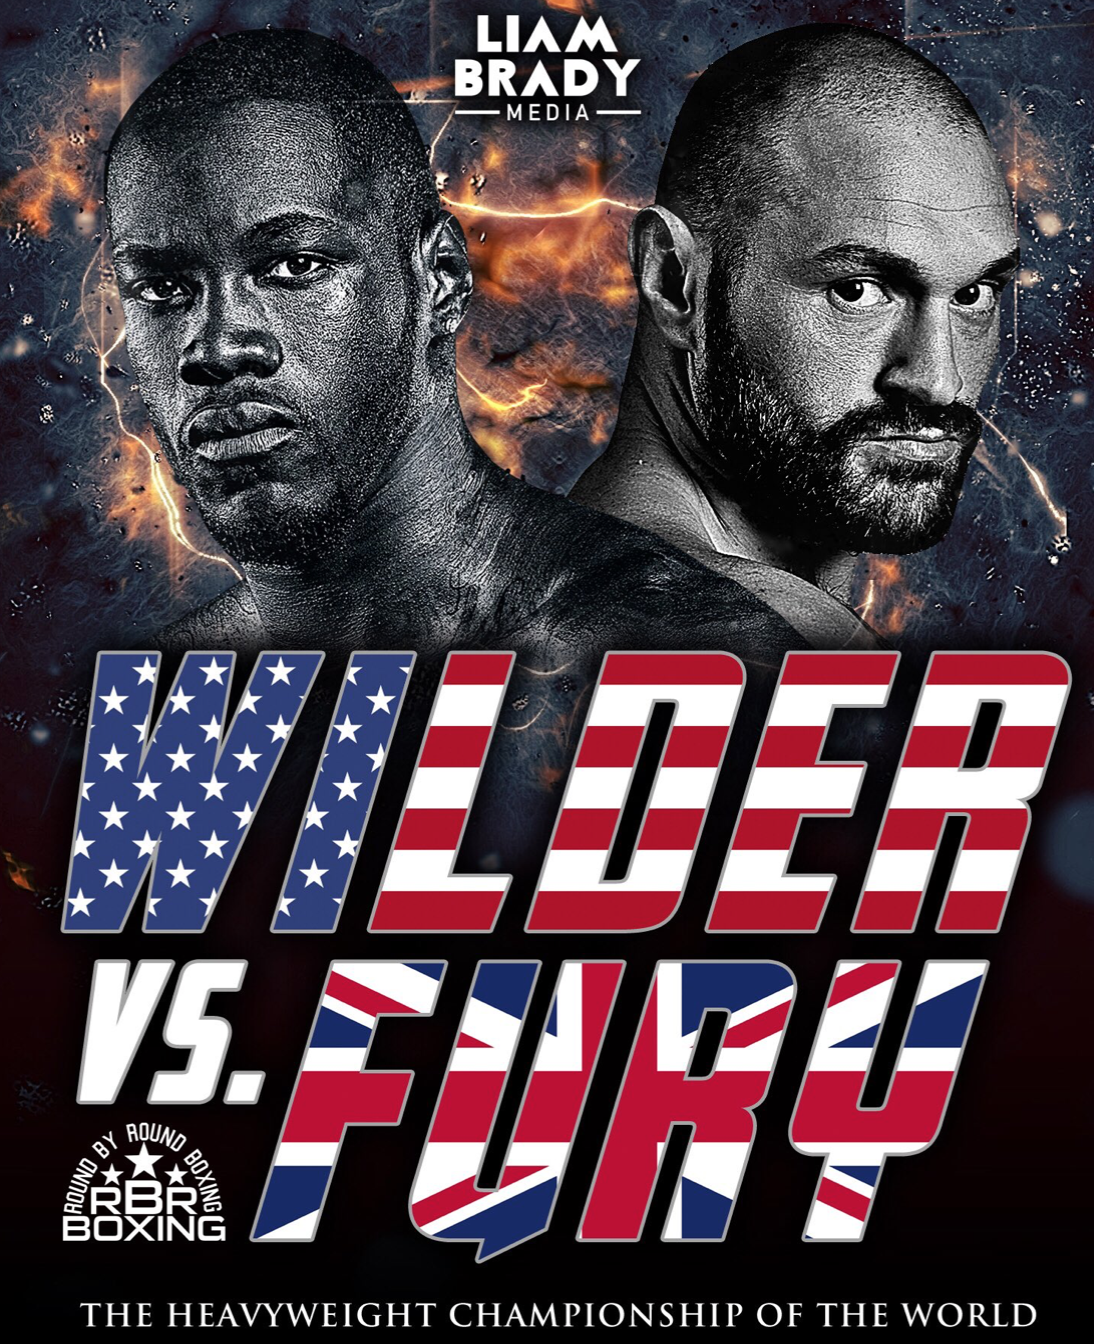 Heavyweight Boxing Champion Deontay Wilder Faces Tyson Fury